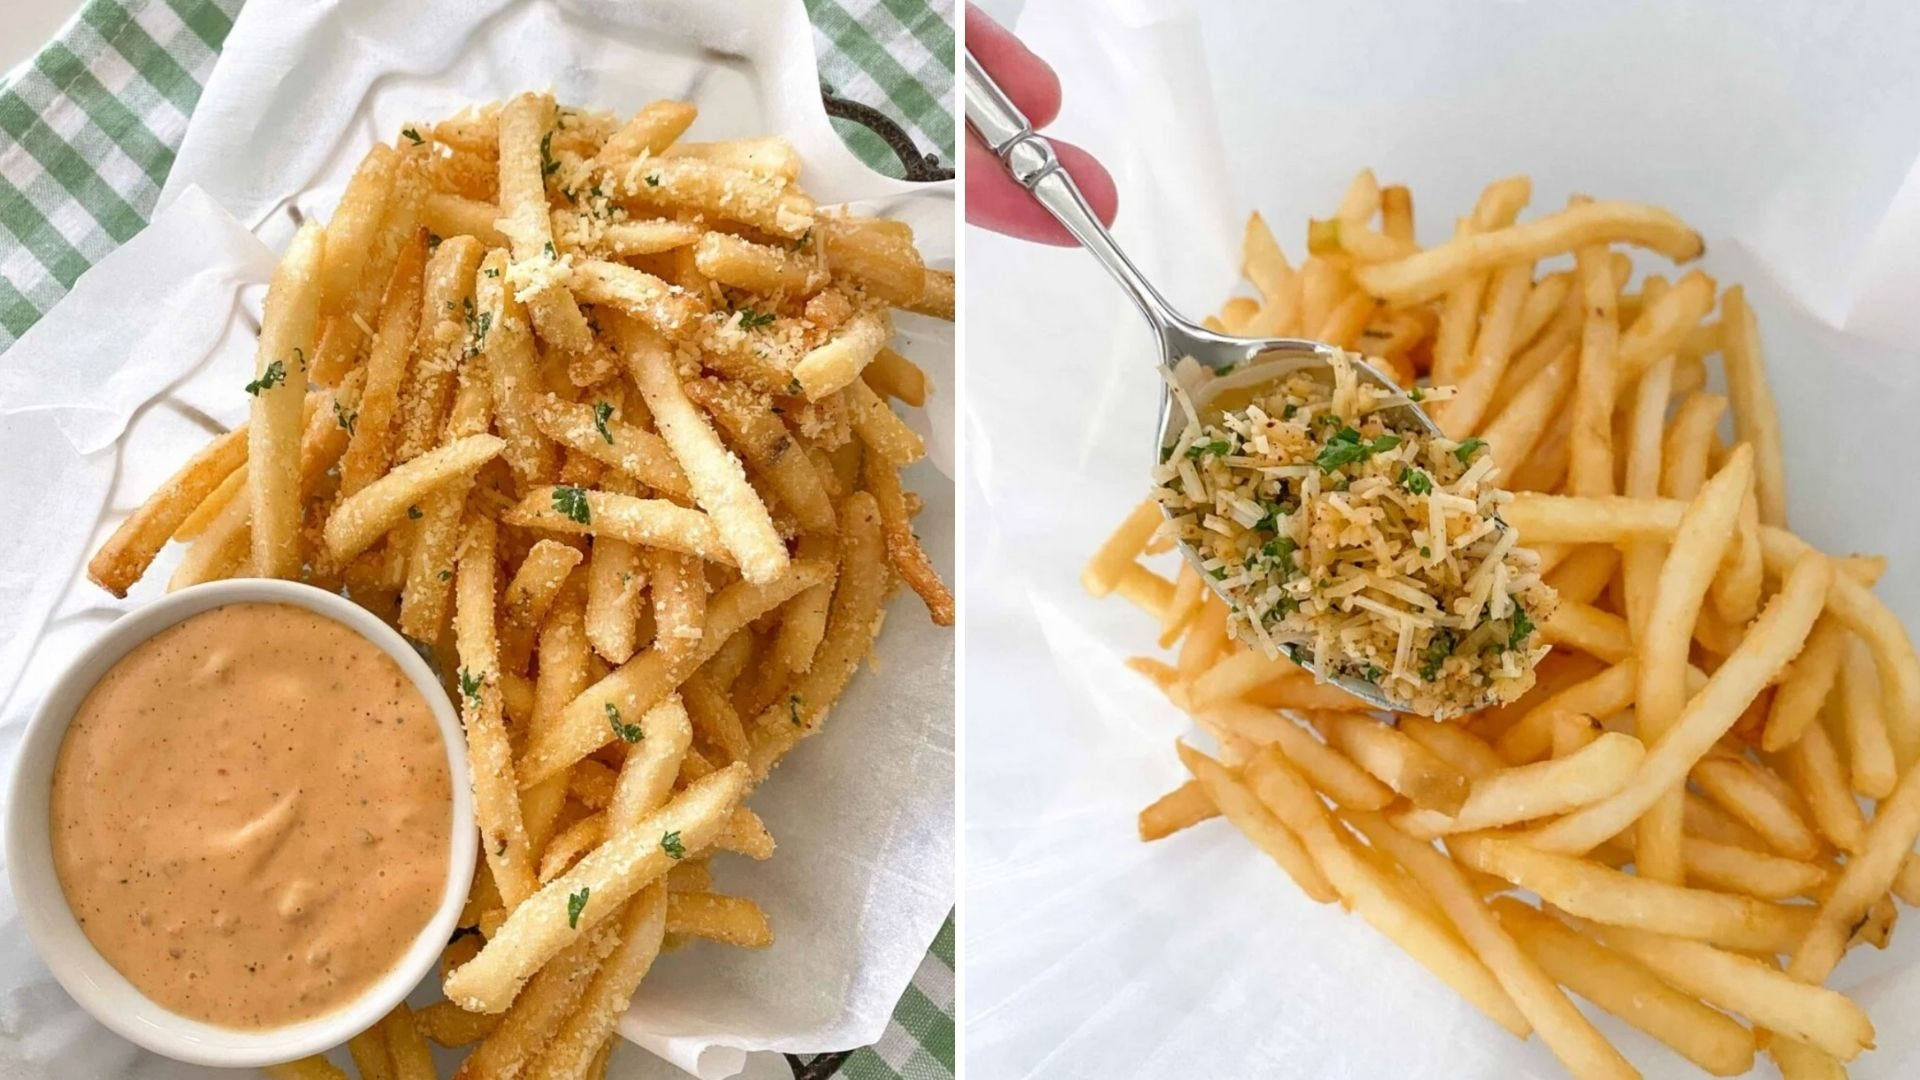 A basket of seasoned fries with a dipping sauce and someone pours a spoonful of seasoning on fries